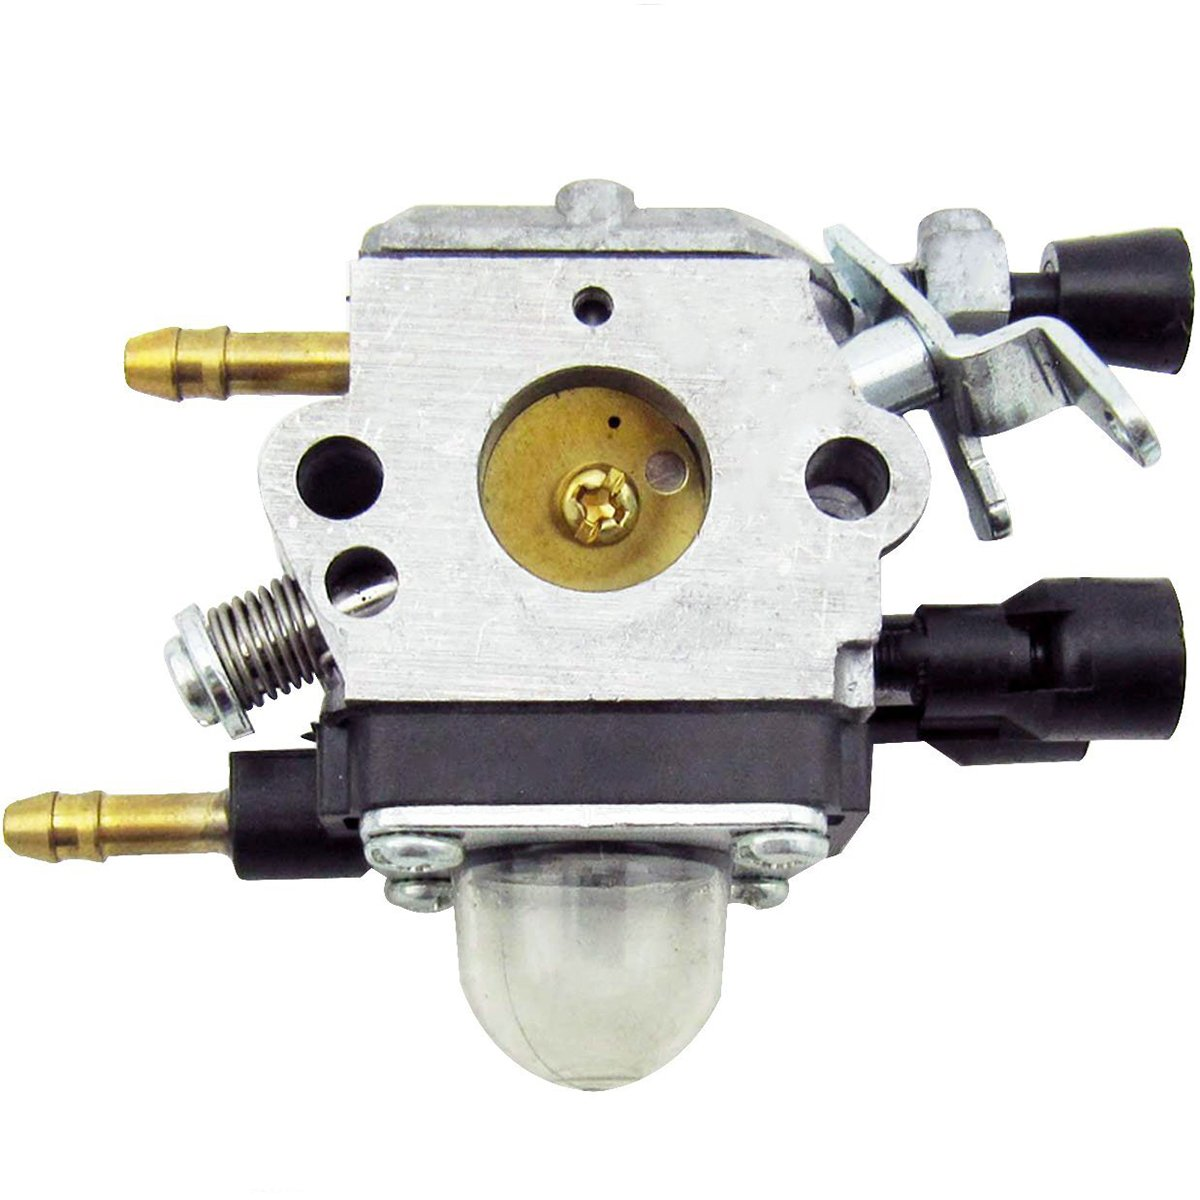 New Carburetor C1Q-S68G Fits Stihl BG45 BG46 BG55 BG65 BG85 SH55 SH85 42291200606 by Amhousejoy NINGDE KELONG VEHICLE PARTS